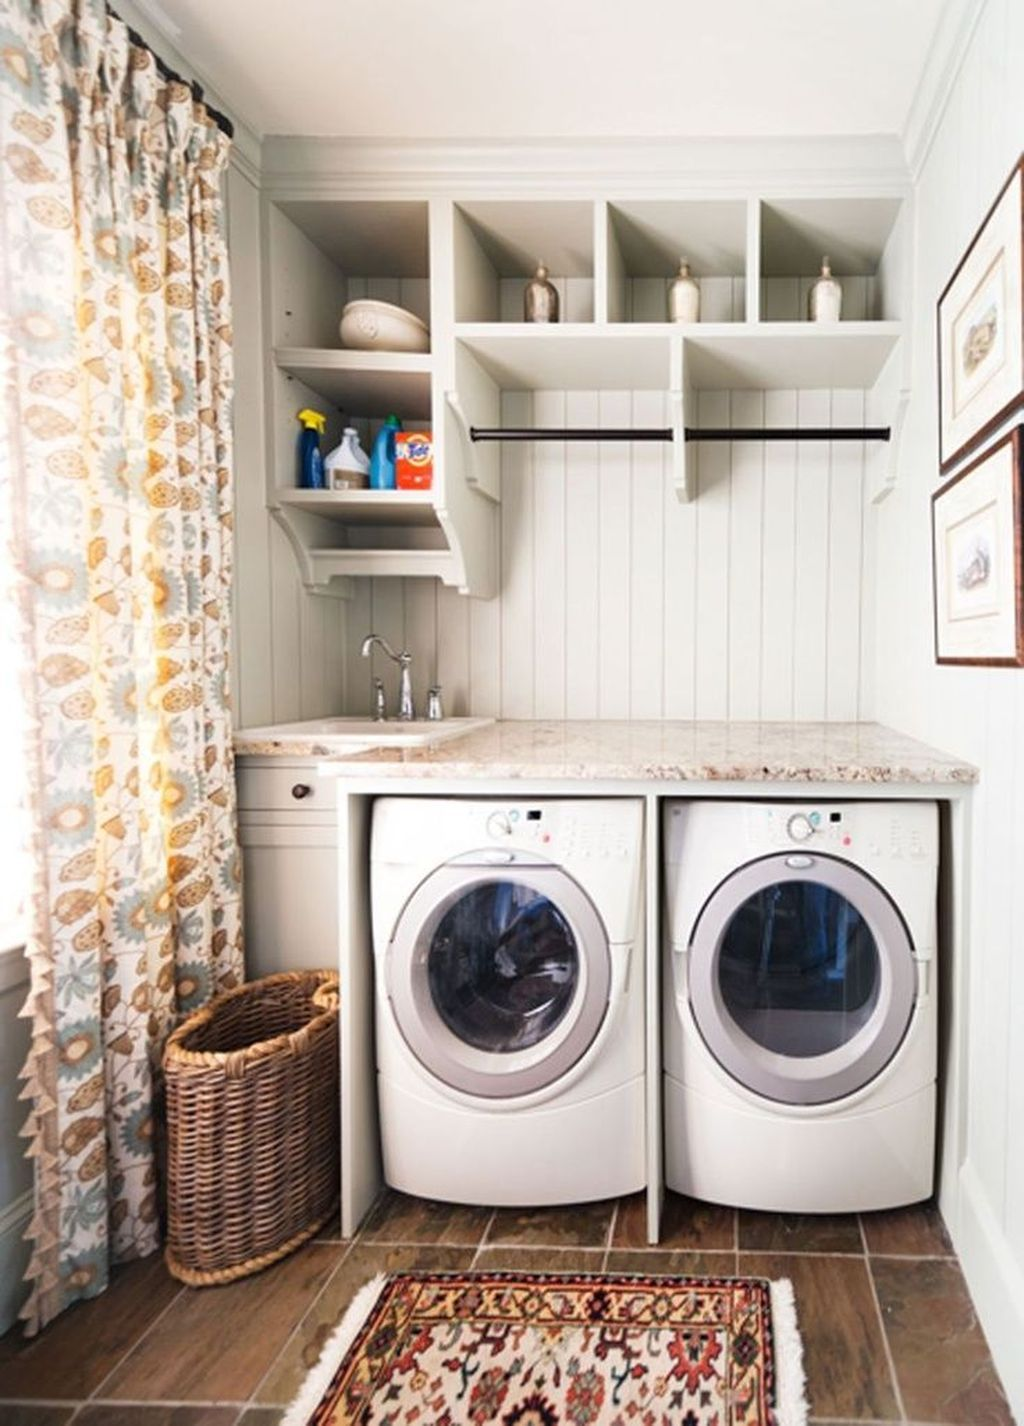 32 Stunning Small Laundry Room Design Ideas | Small laundry rooms ...